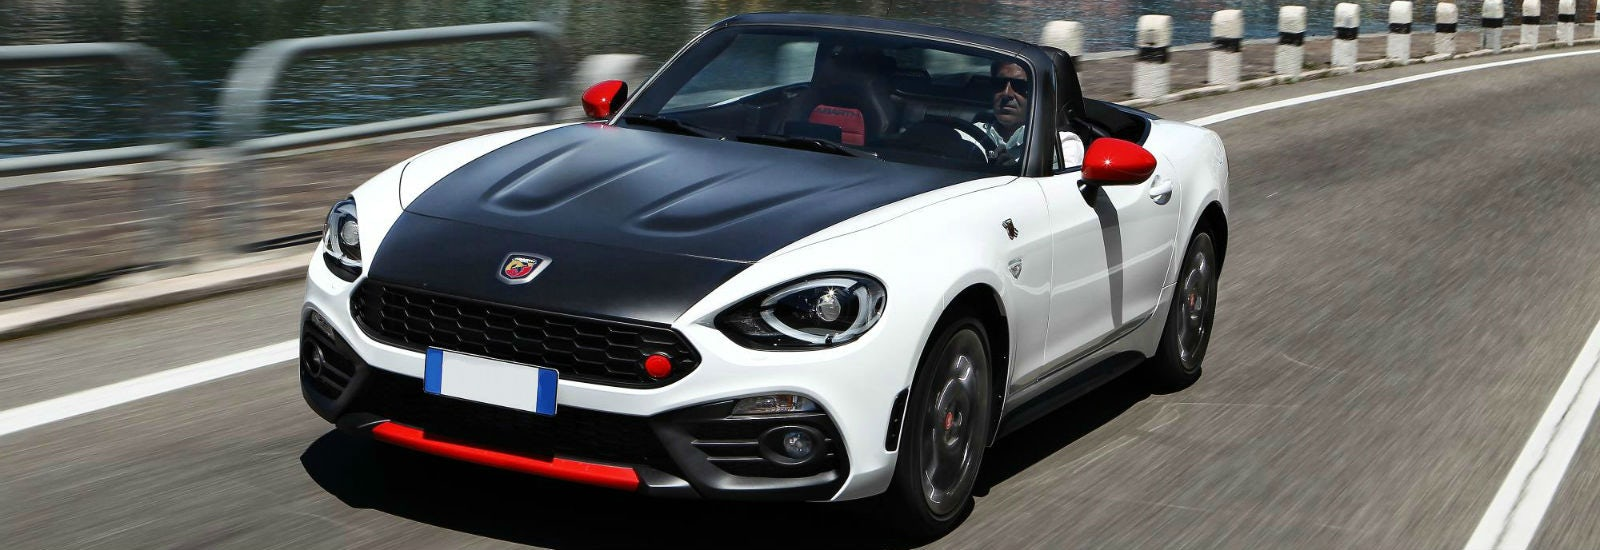 The UKs Cheapest Convertible Sports Cars Carwow - Sports cars convertible